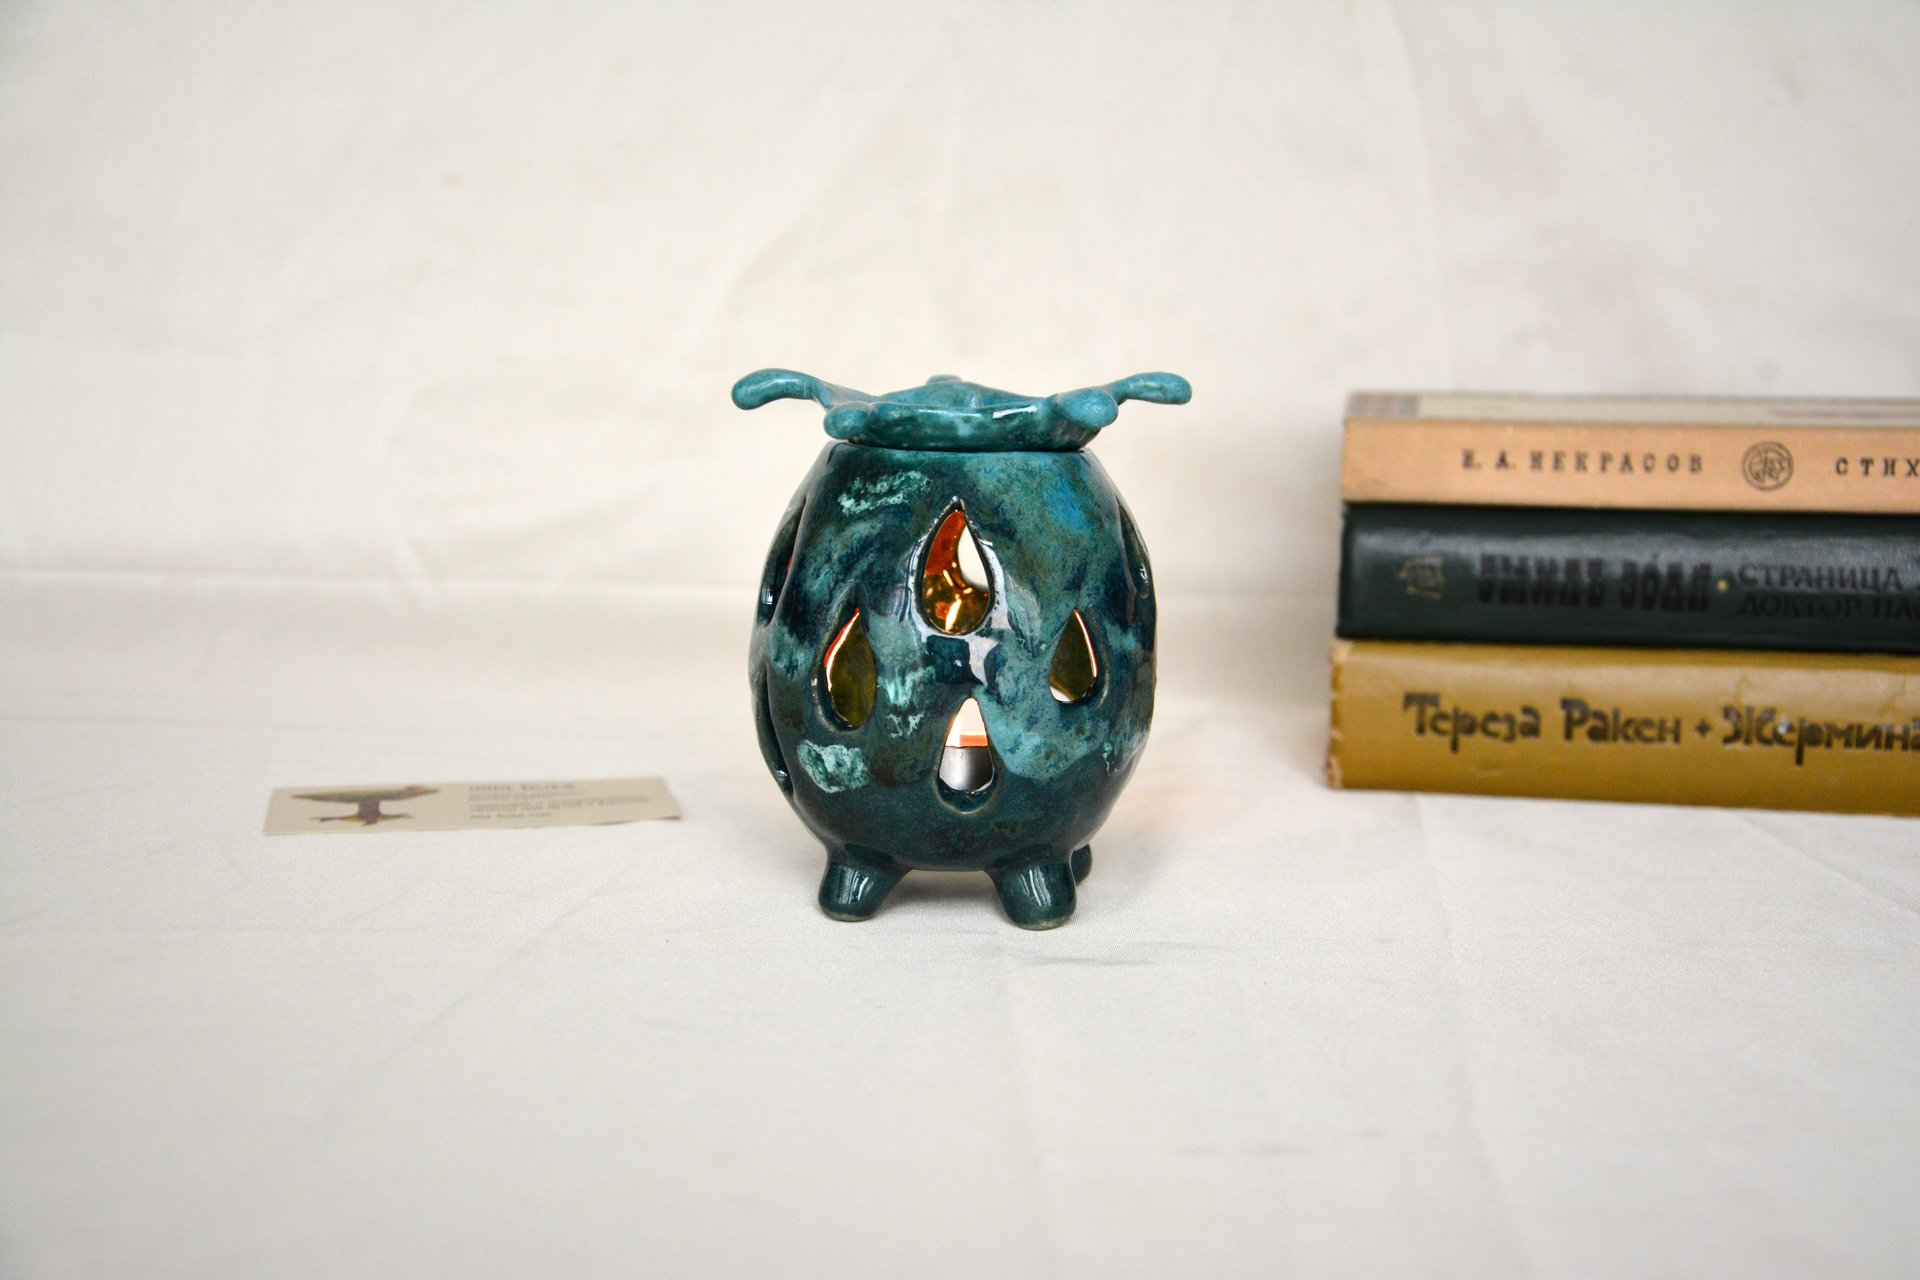 Aroma lamp Drops - Oil burners, height - 10 cm, diameter - 8 cm, photo 3 of 3.